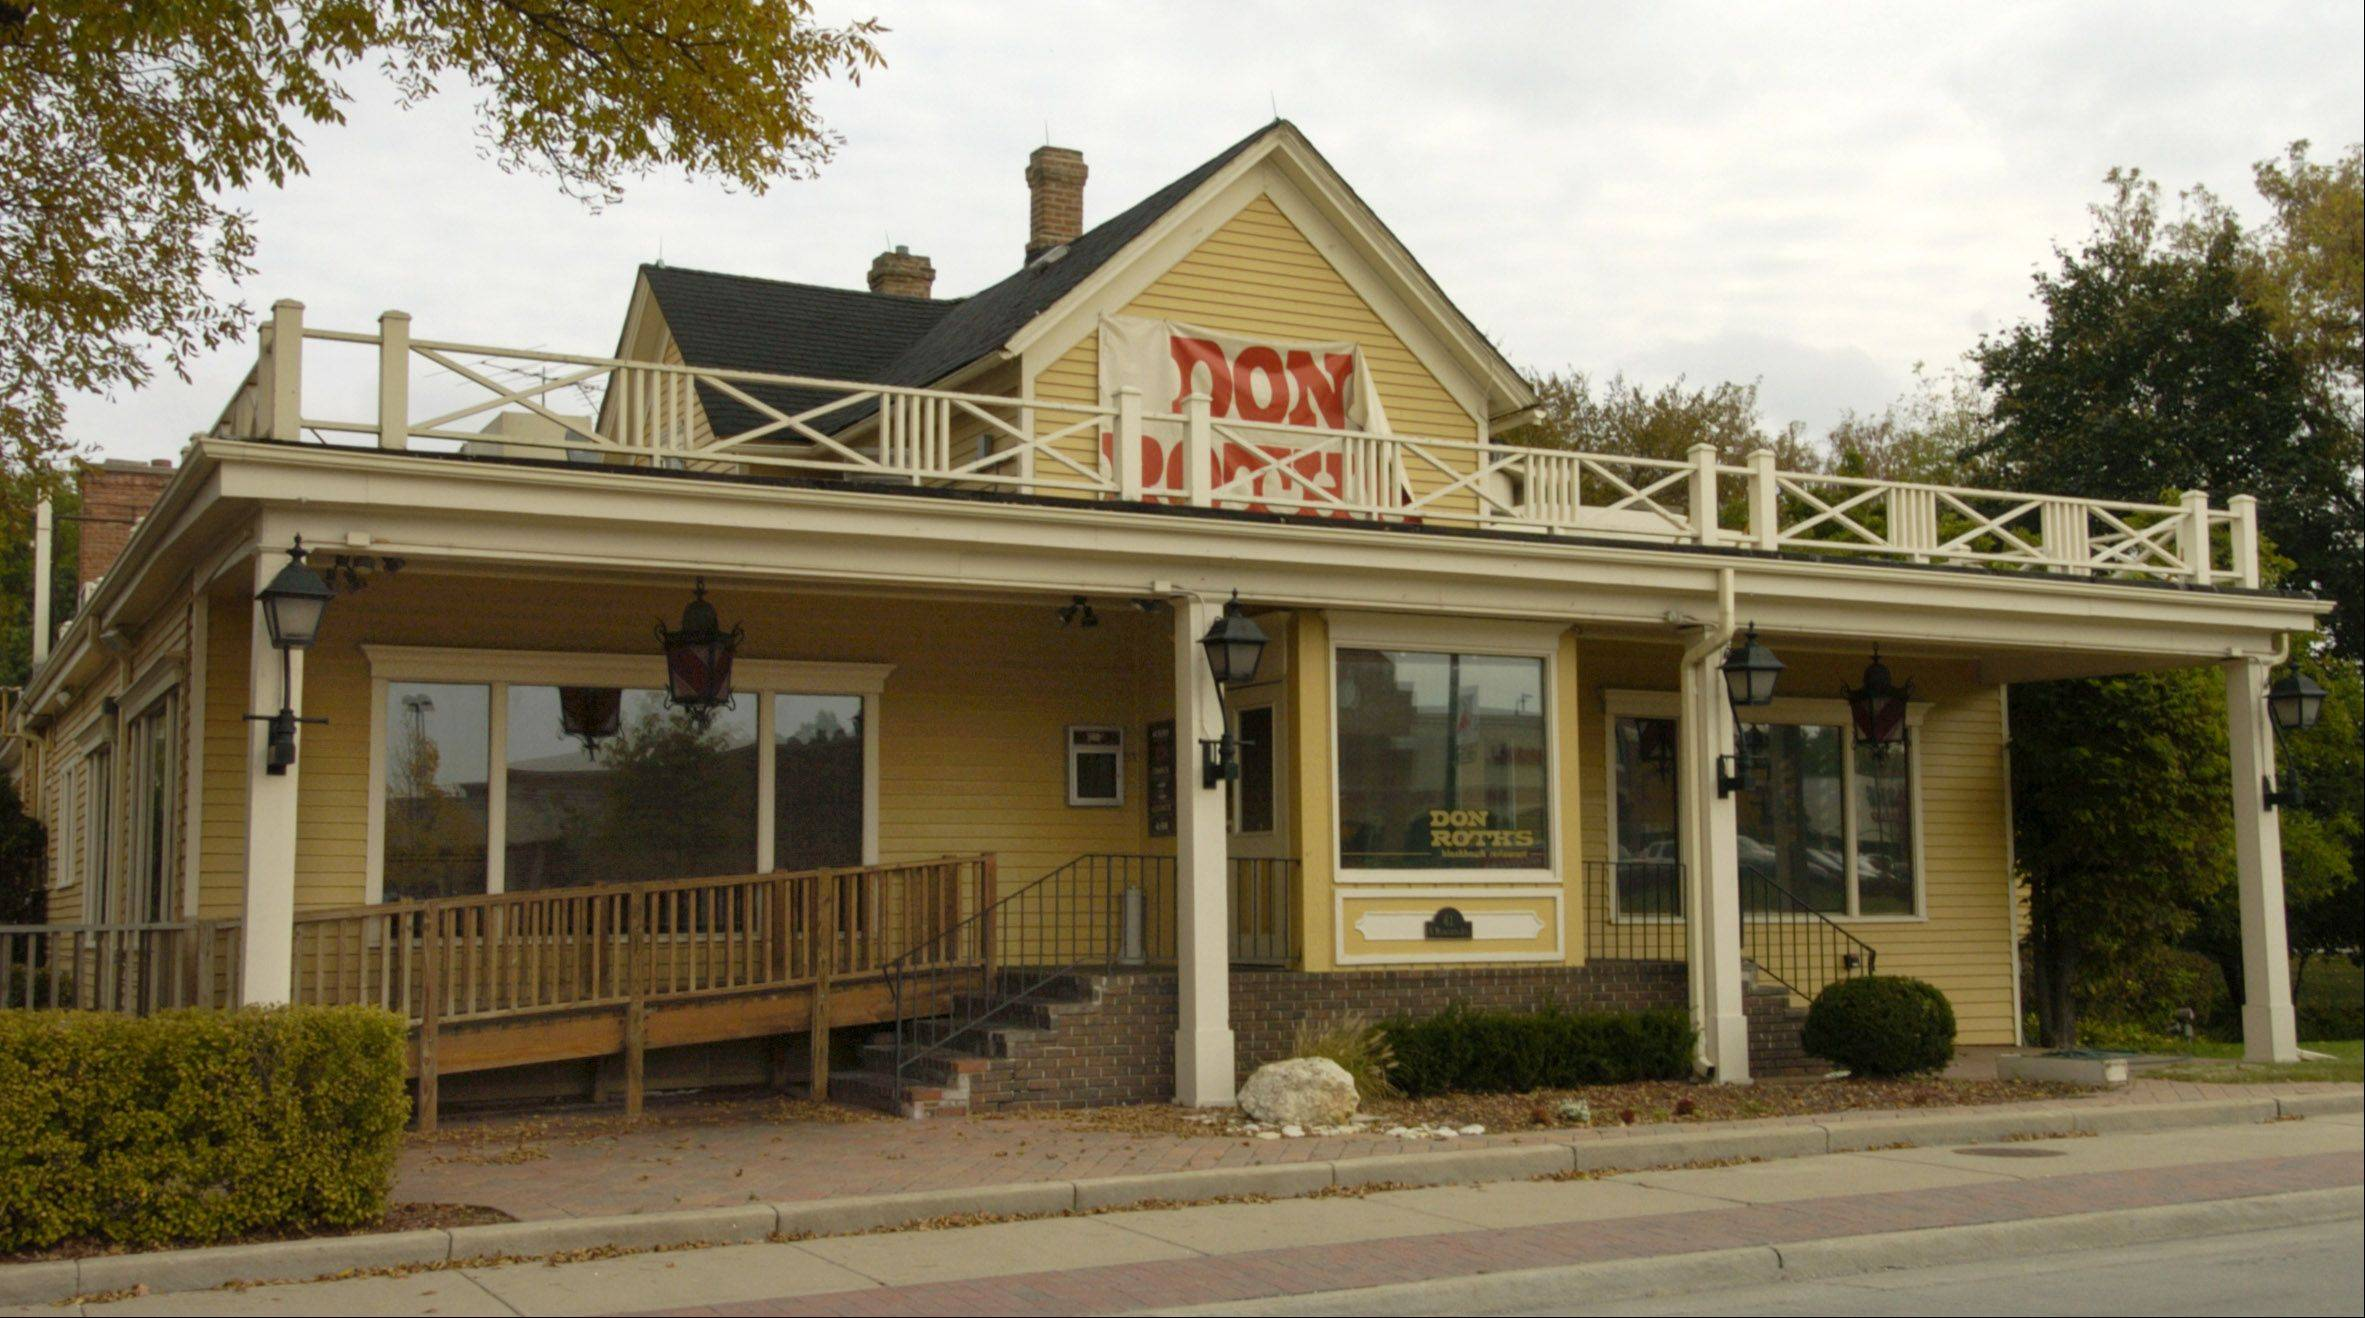 Don Roth's restaurant, which closed in 2009 in Wheeling, faces demolition.